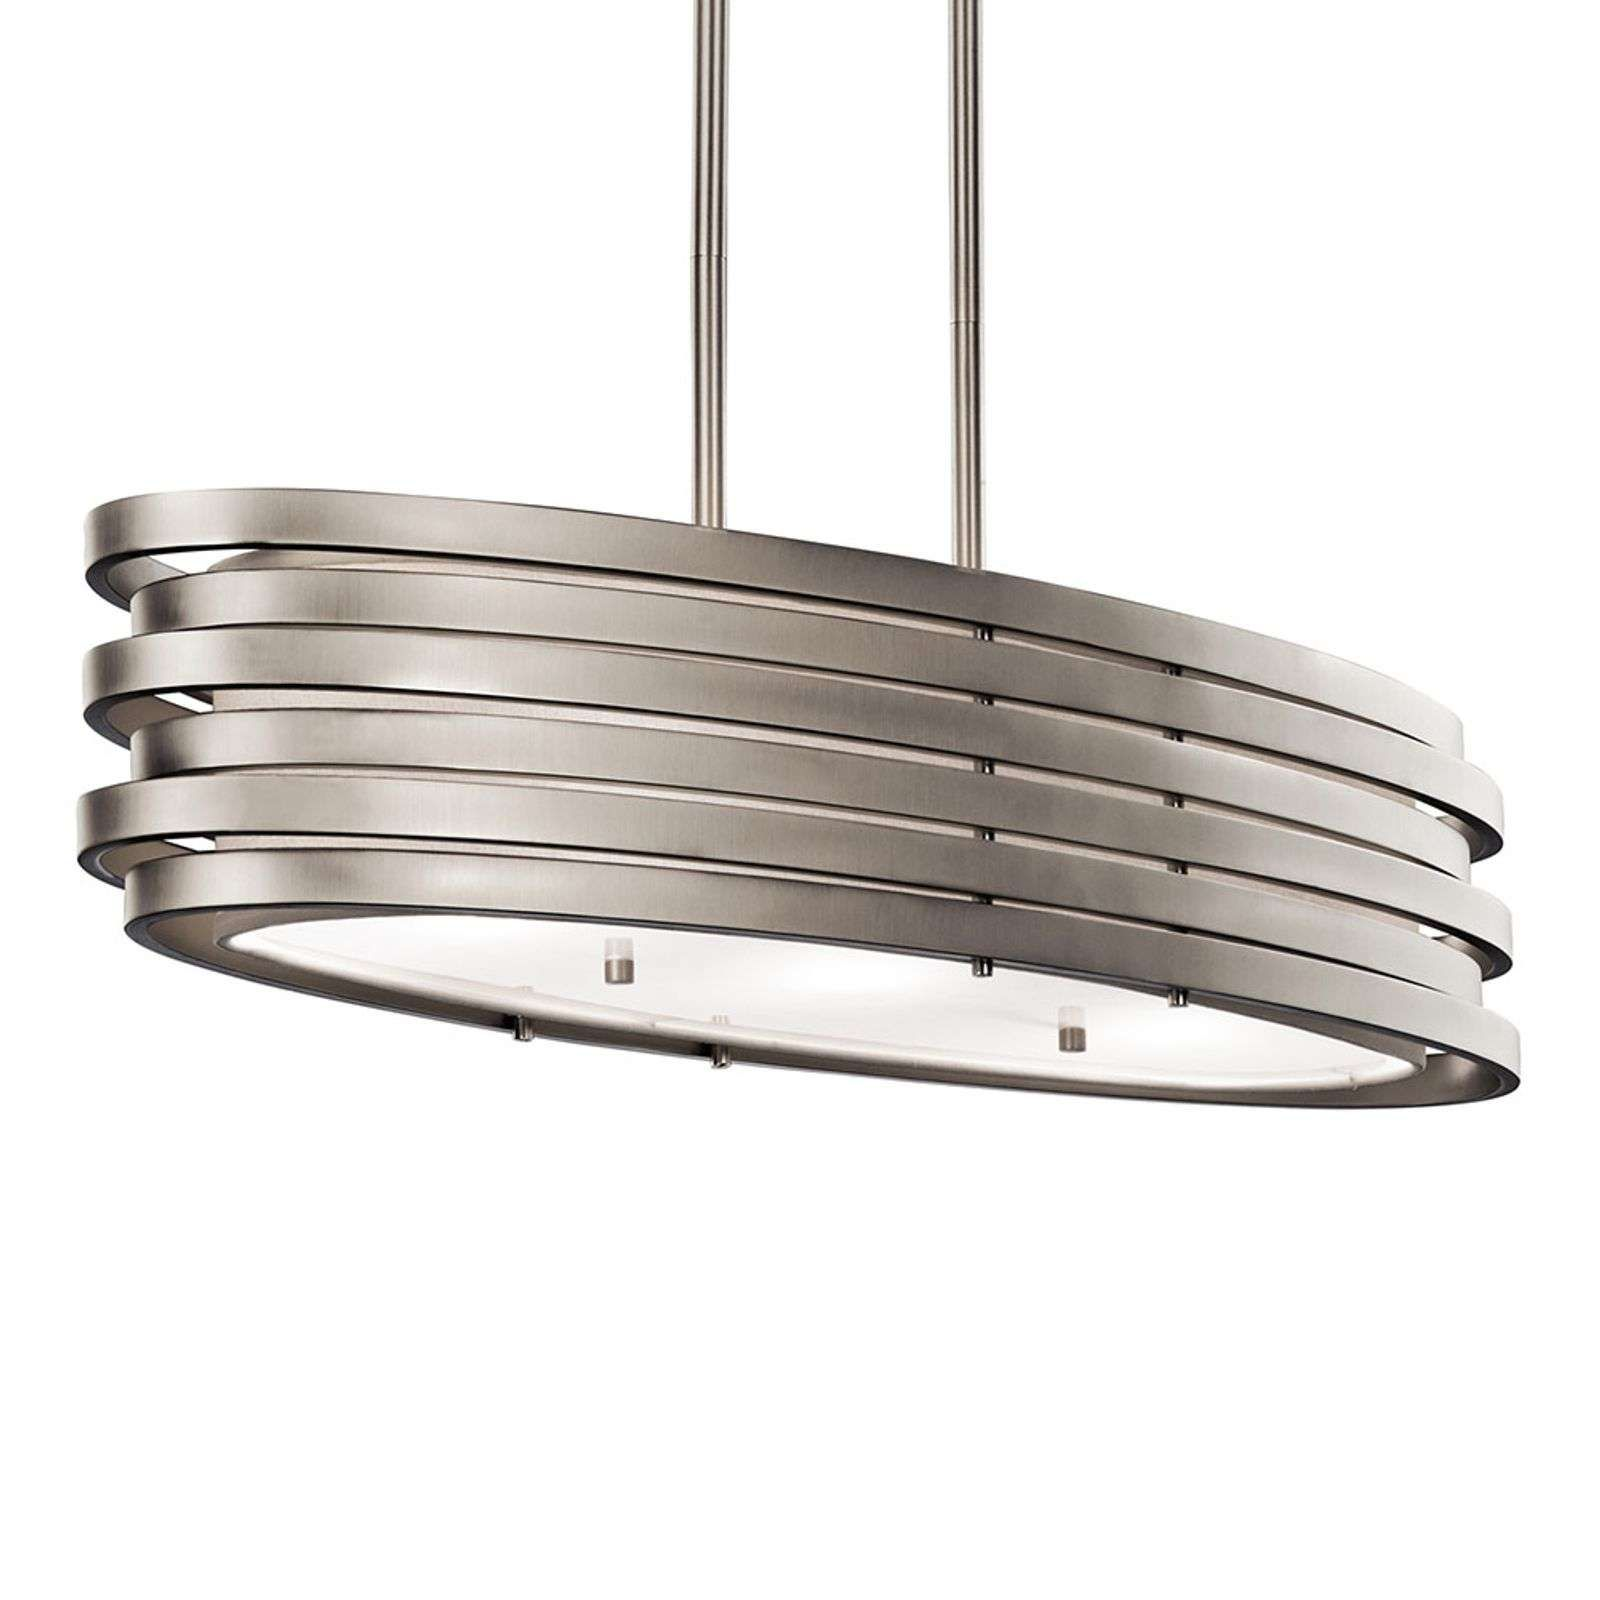 Hangelampe Roswell Ovale Form Moderne Luminaire Verre